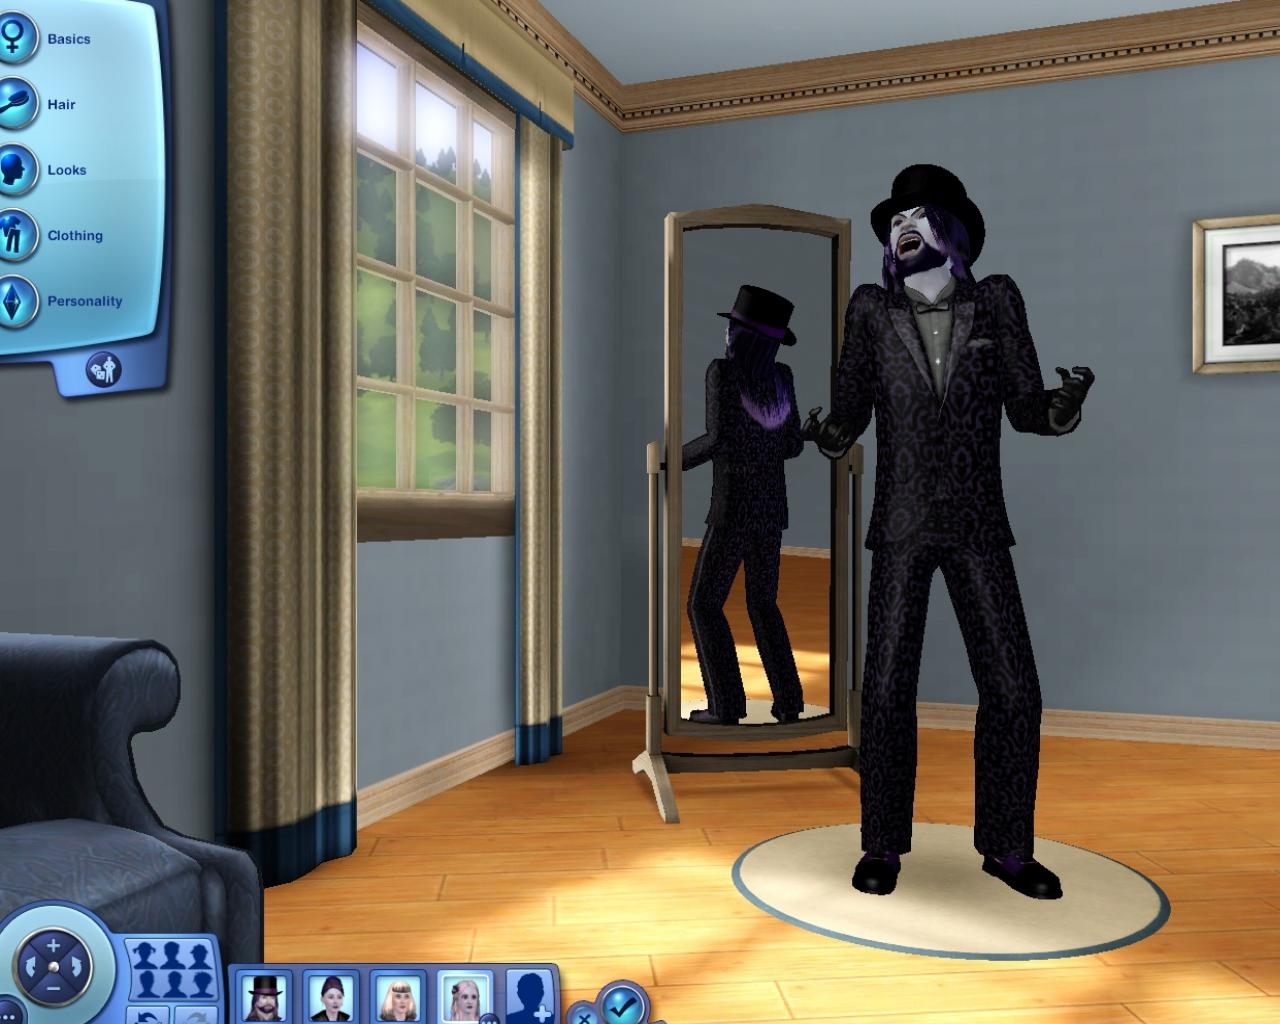 Sims 3 uncenzored exploited clips